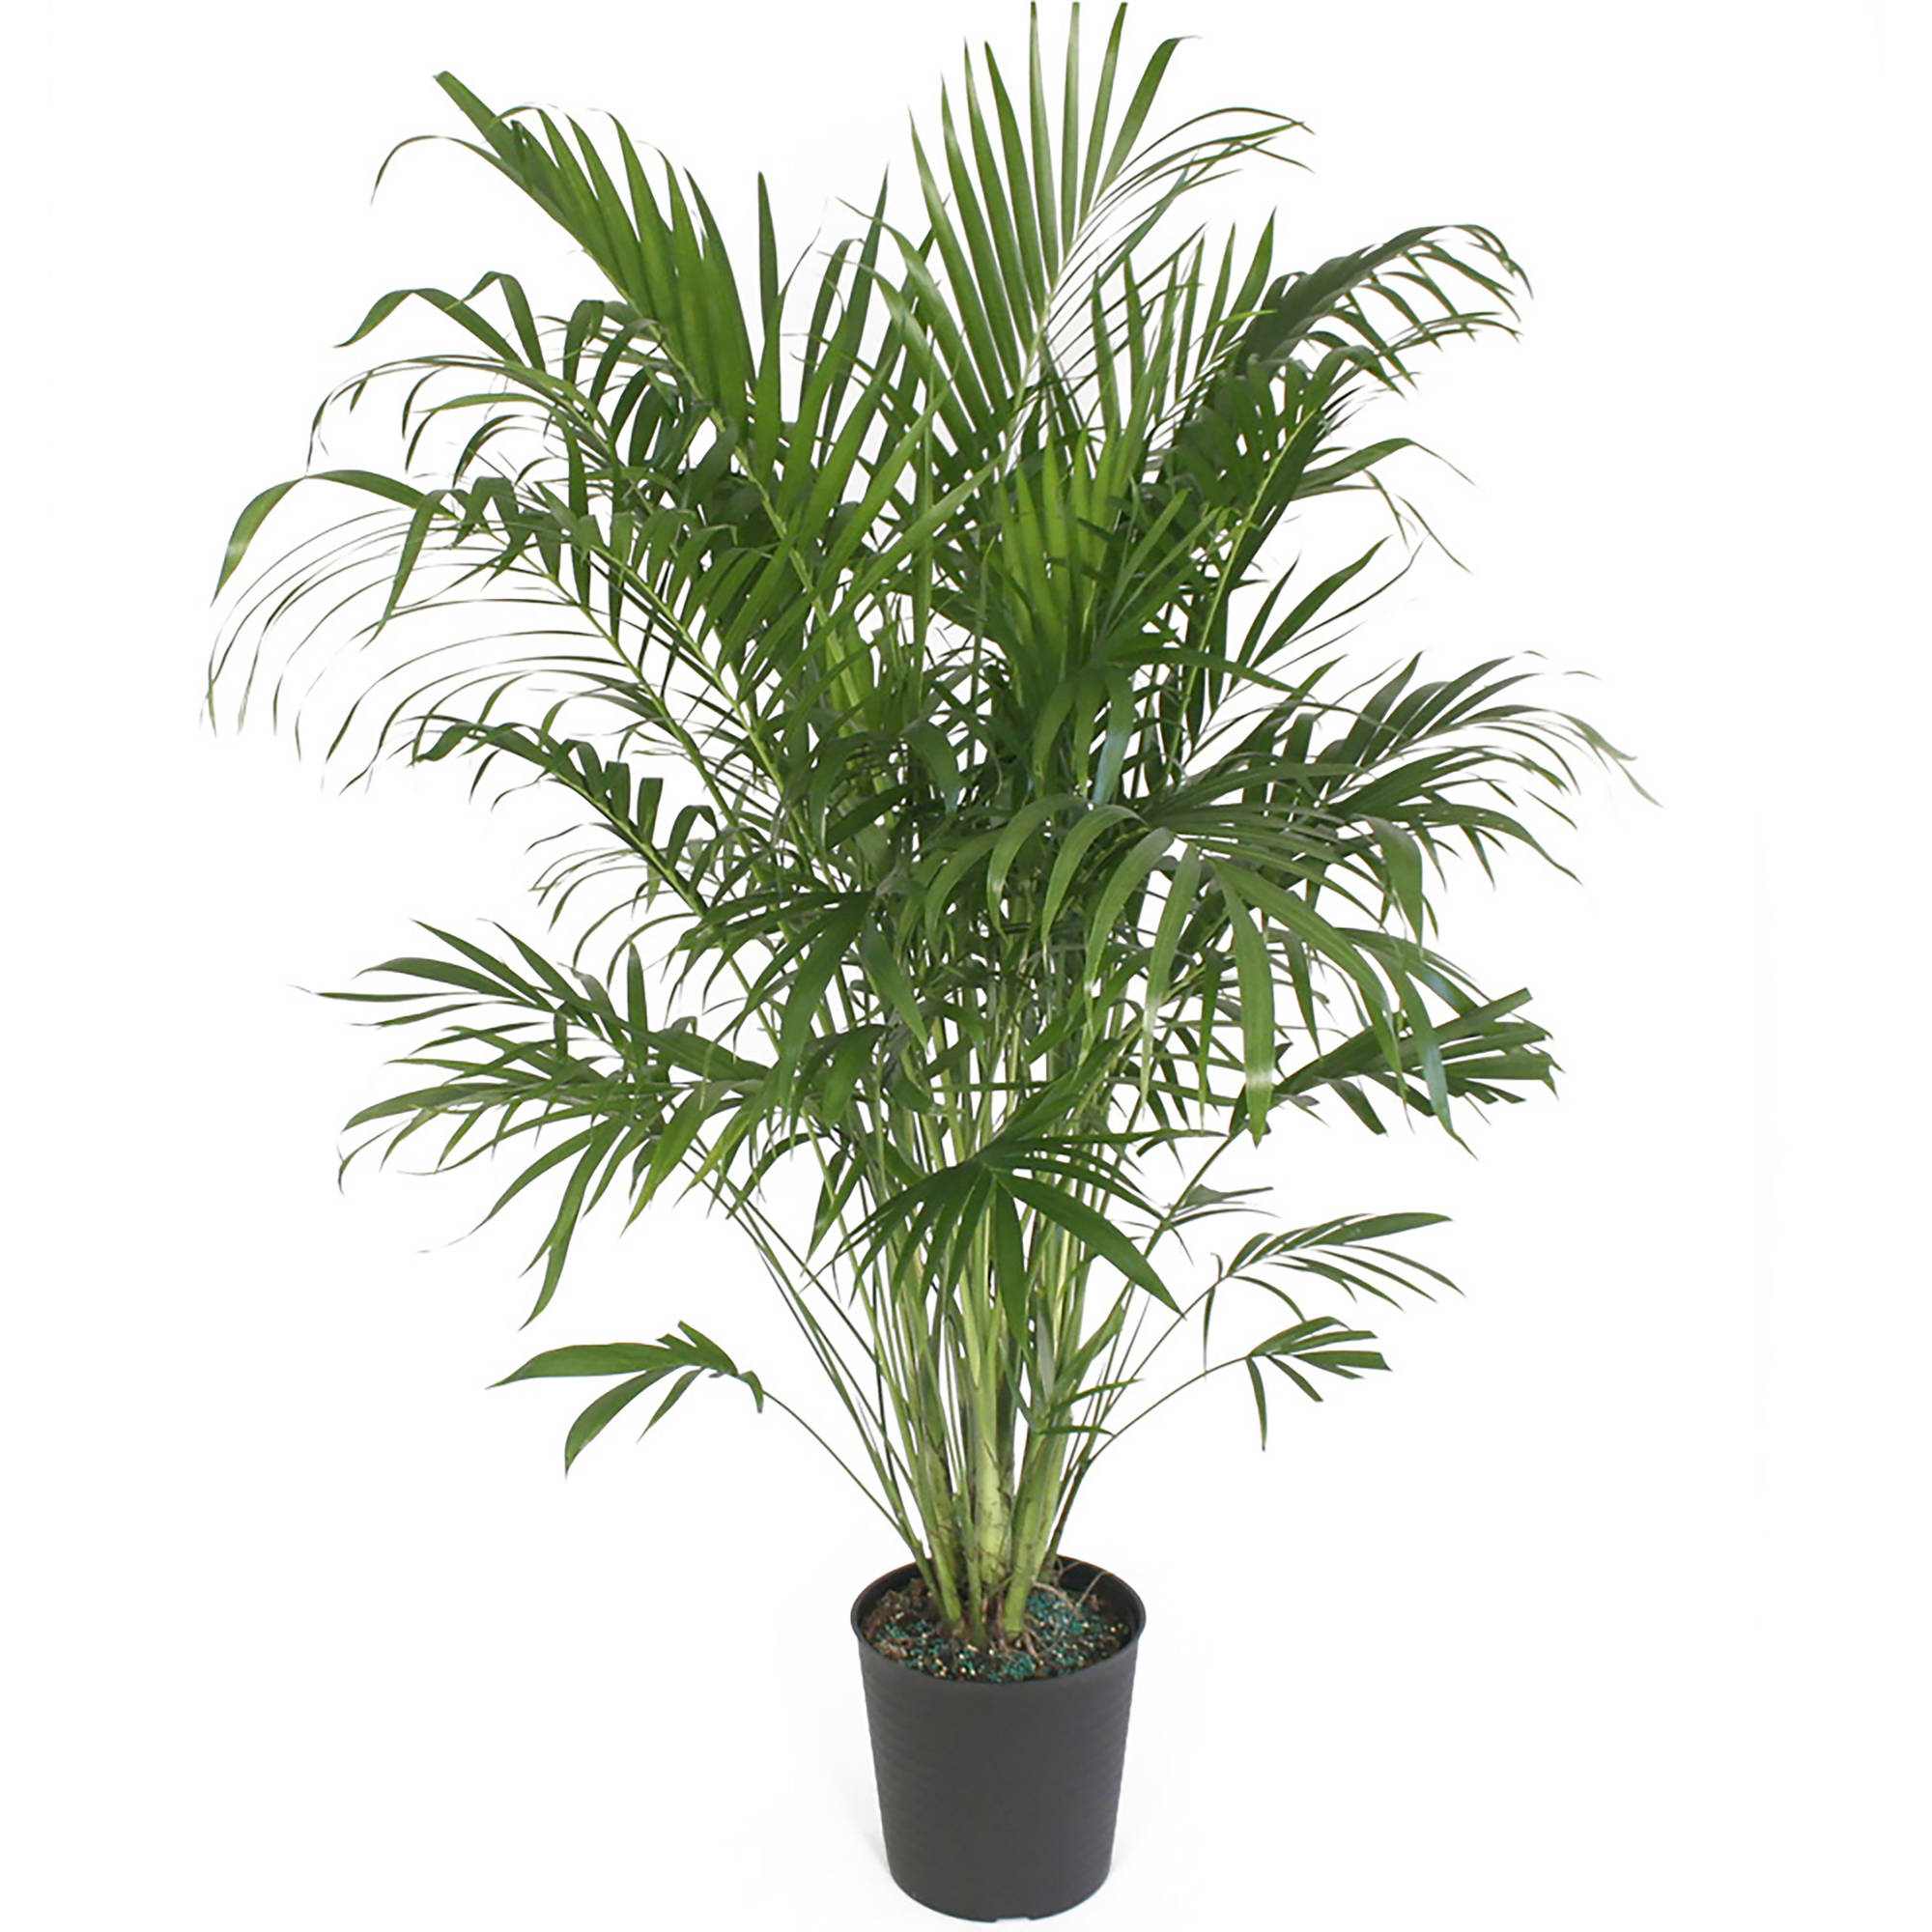 Delray Plants Cat Palm (Chamaedorea cataractarum) Easy to Grow Live House Plant, 10-inch Grower Pot